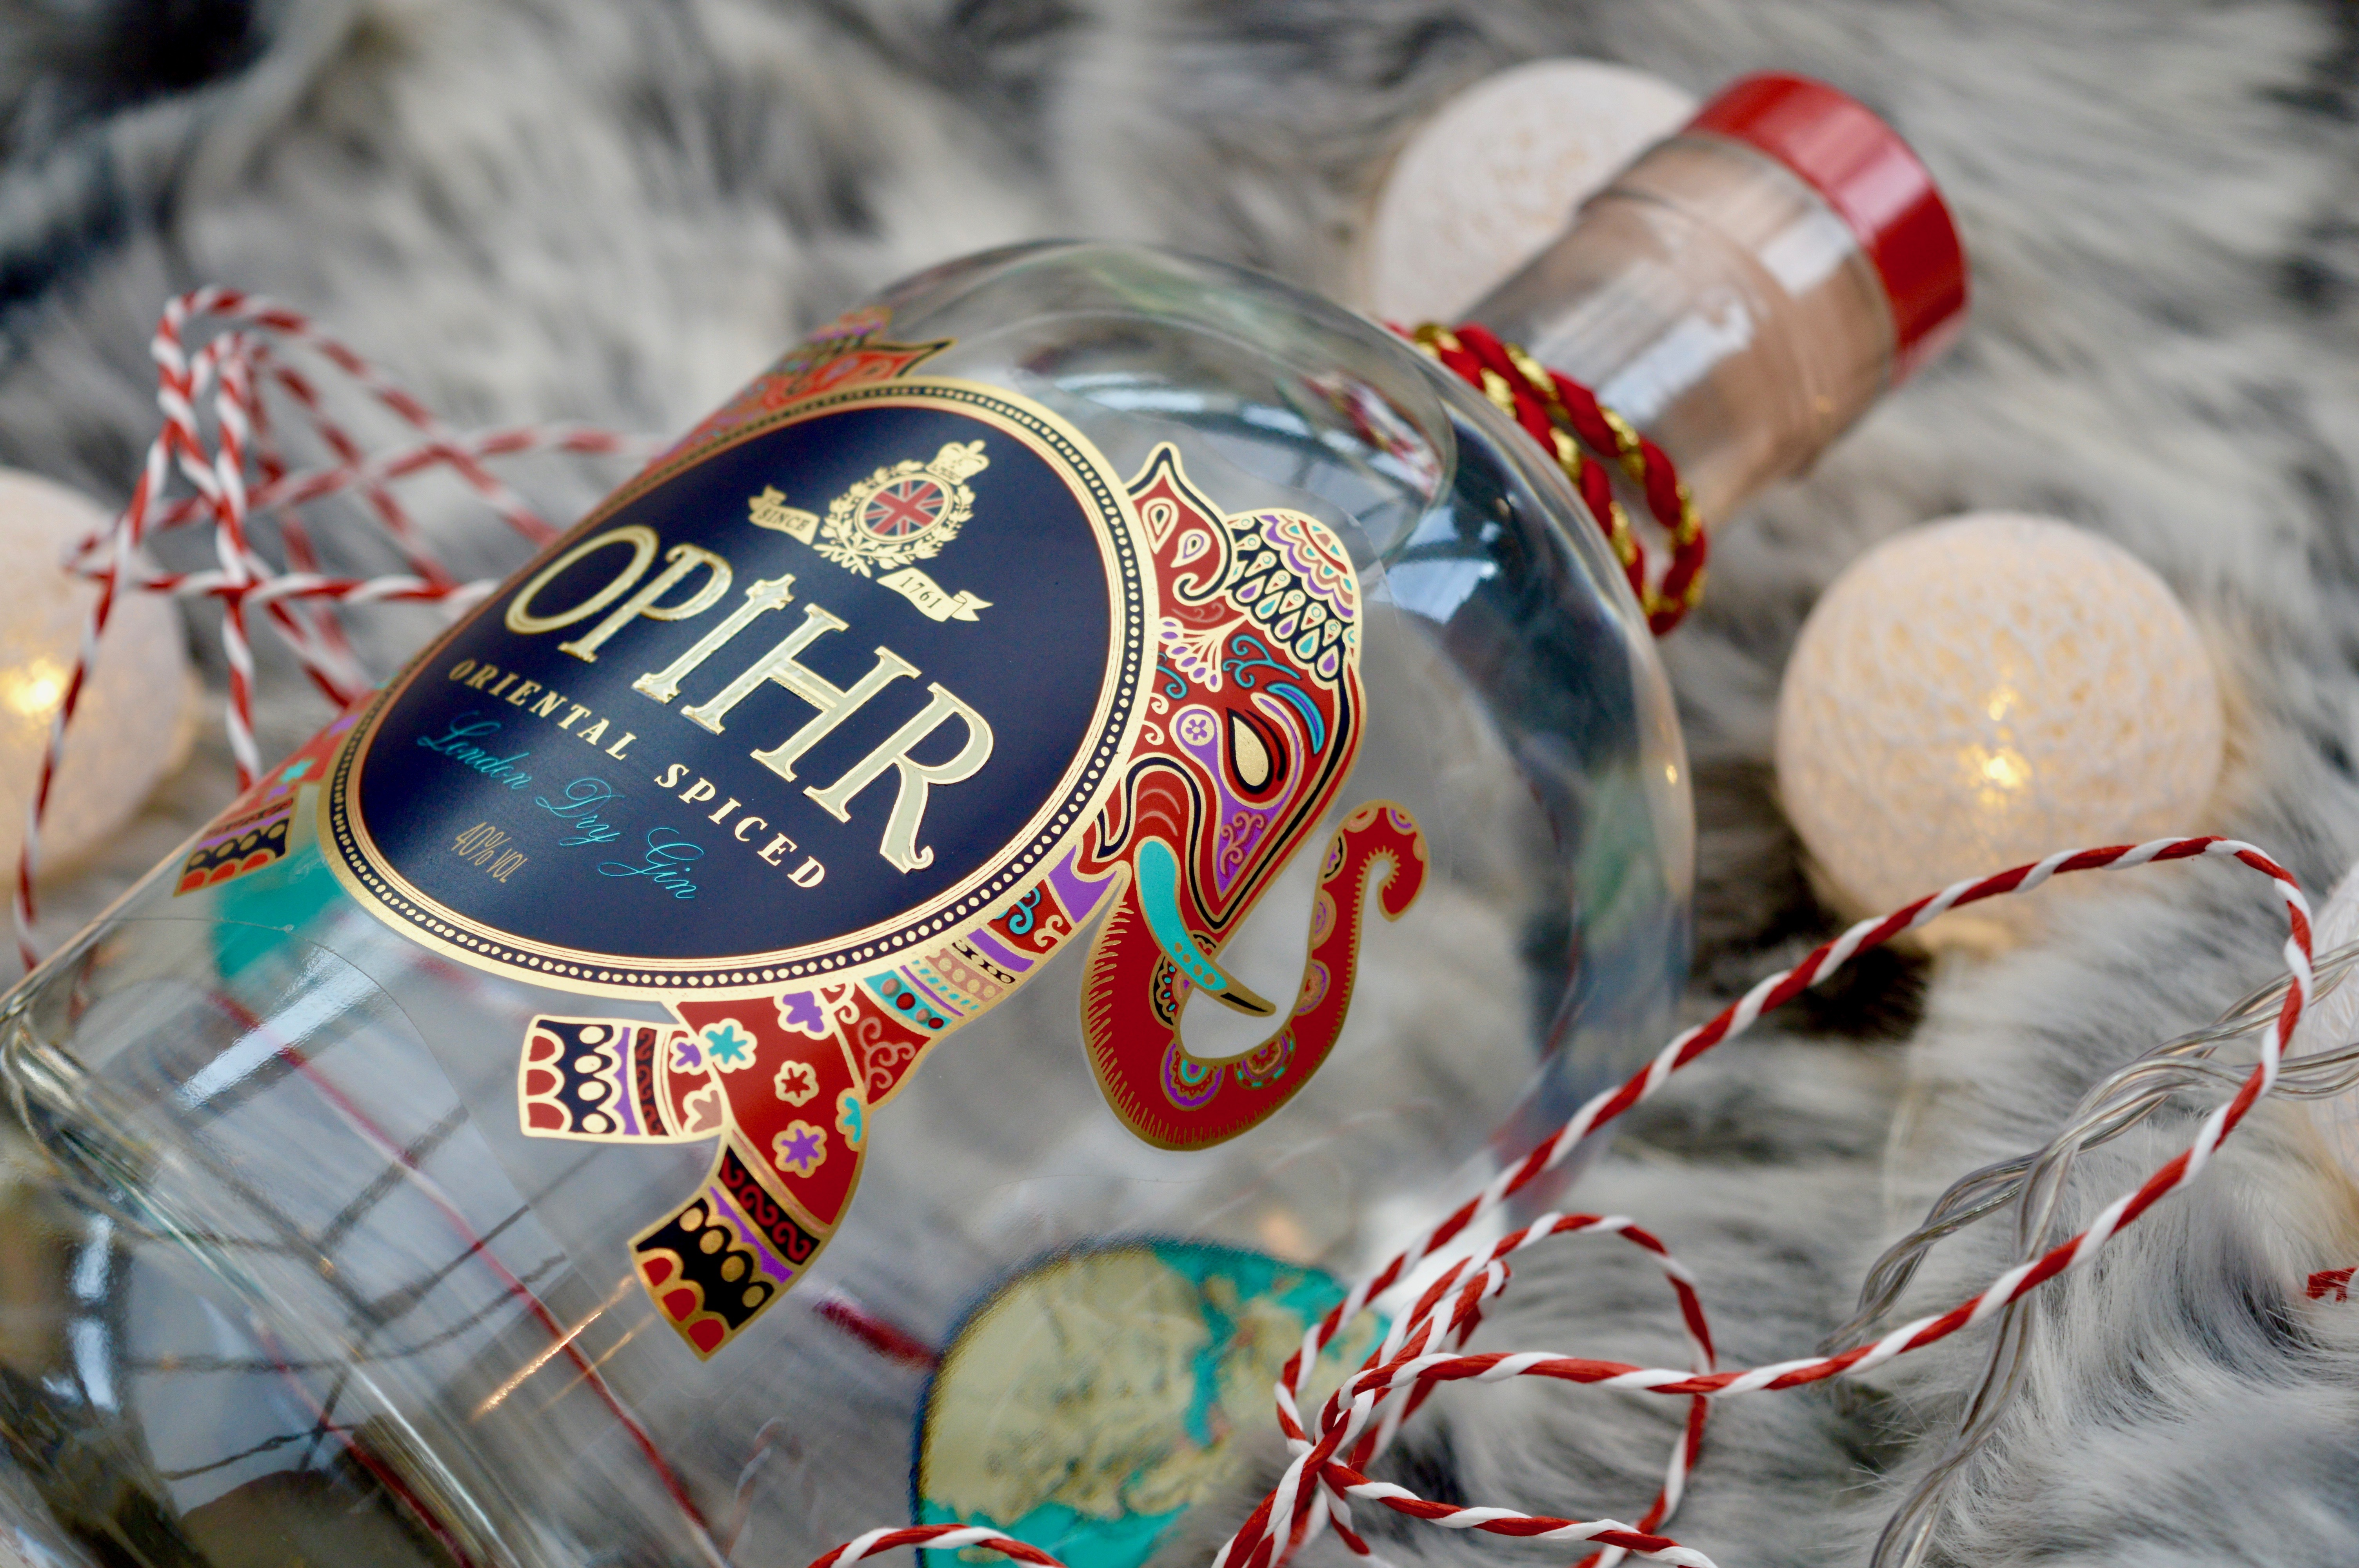 Opihr Gin | What to buy a gin lover | Christmas Gift Guide | Elle Blonde Luxury Lifestyle Destination Blog